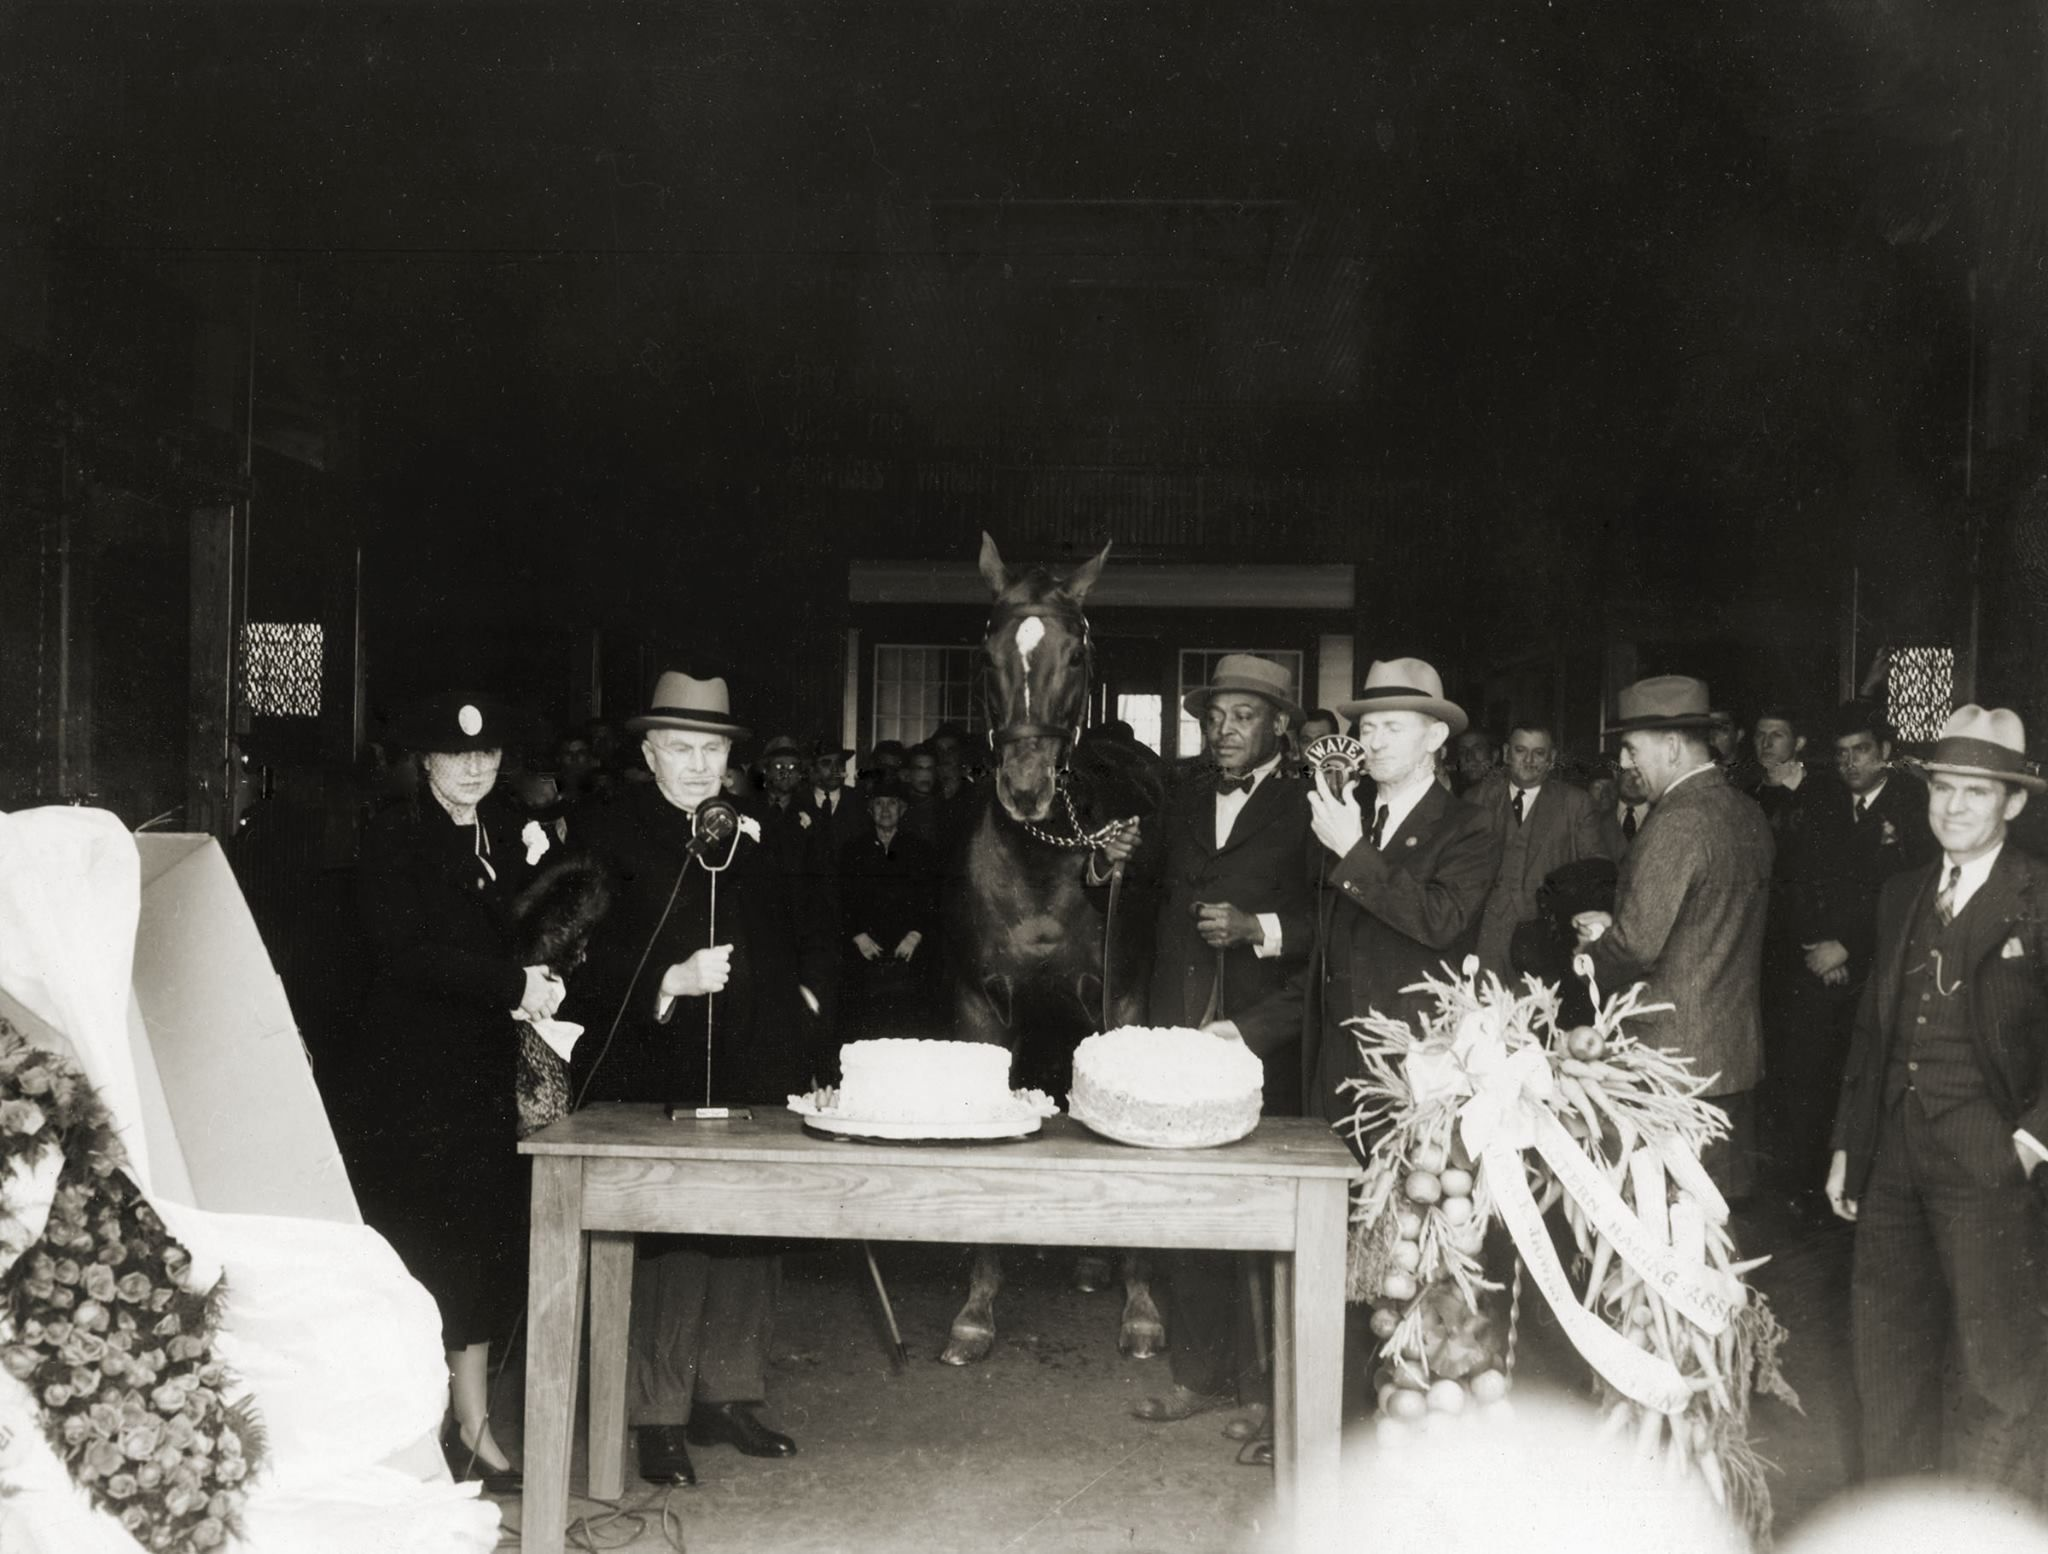 This is a photo of Man o' War's 21st birthday party held